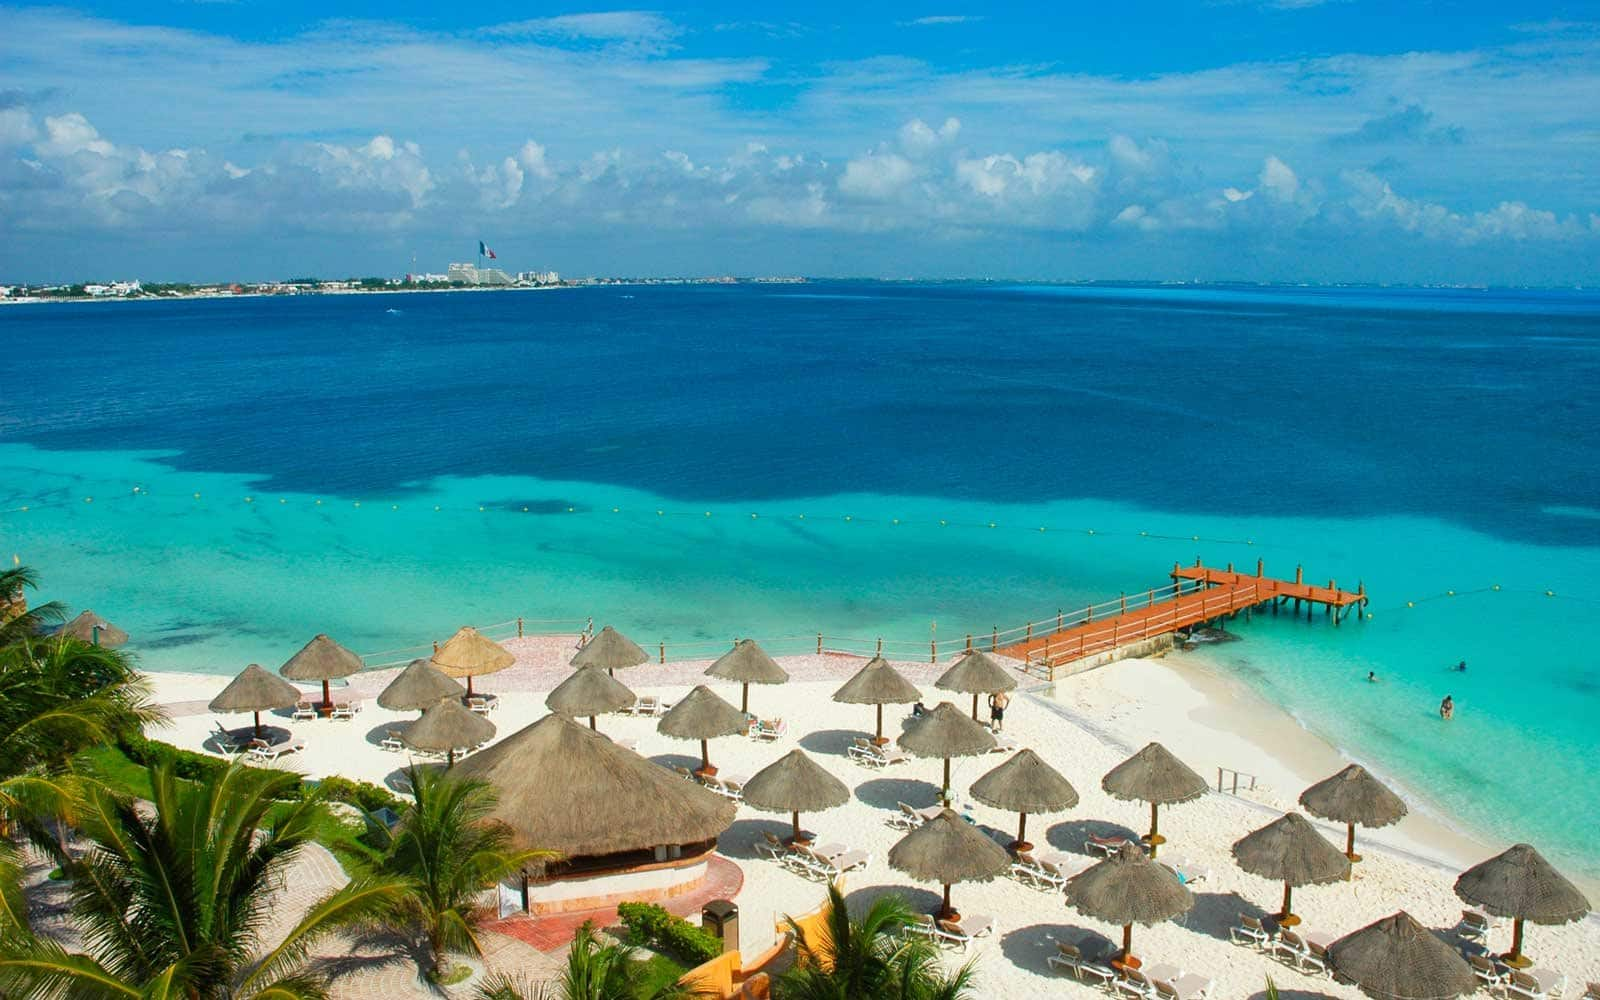 Detroit to Cancun Mexico $210 RT Nonstop Airfares on Spirit Airlines (Travel February-March 2020)